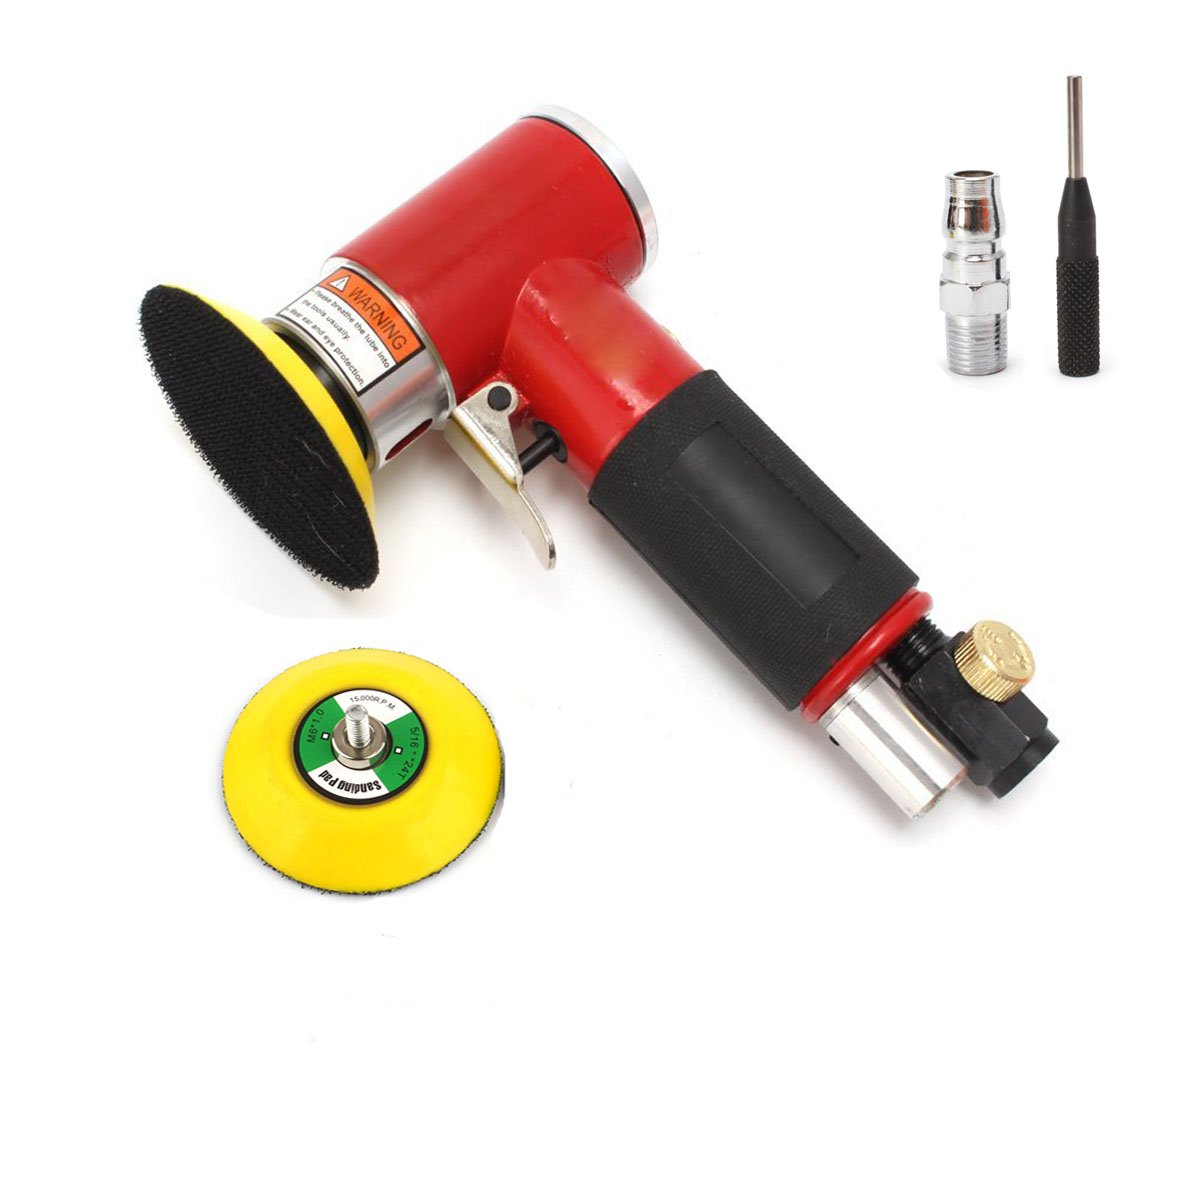 Go2Home 2'' 3'' Mini Orbital Air Sander Polisher Eccentric Dual Action with Adjustable Airflow Valve for Auto Body Work, Cabinets, Furniture